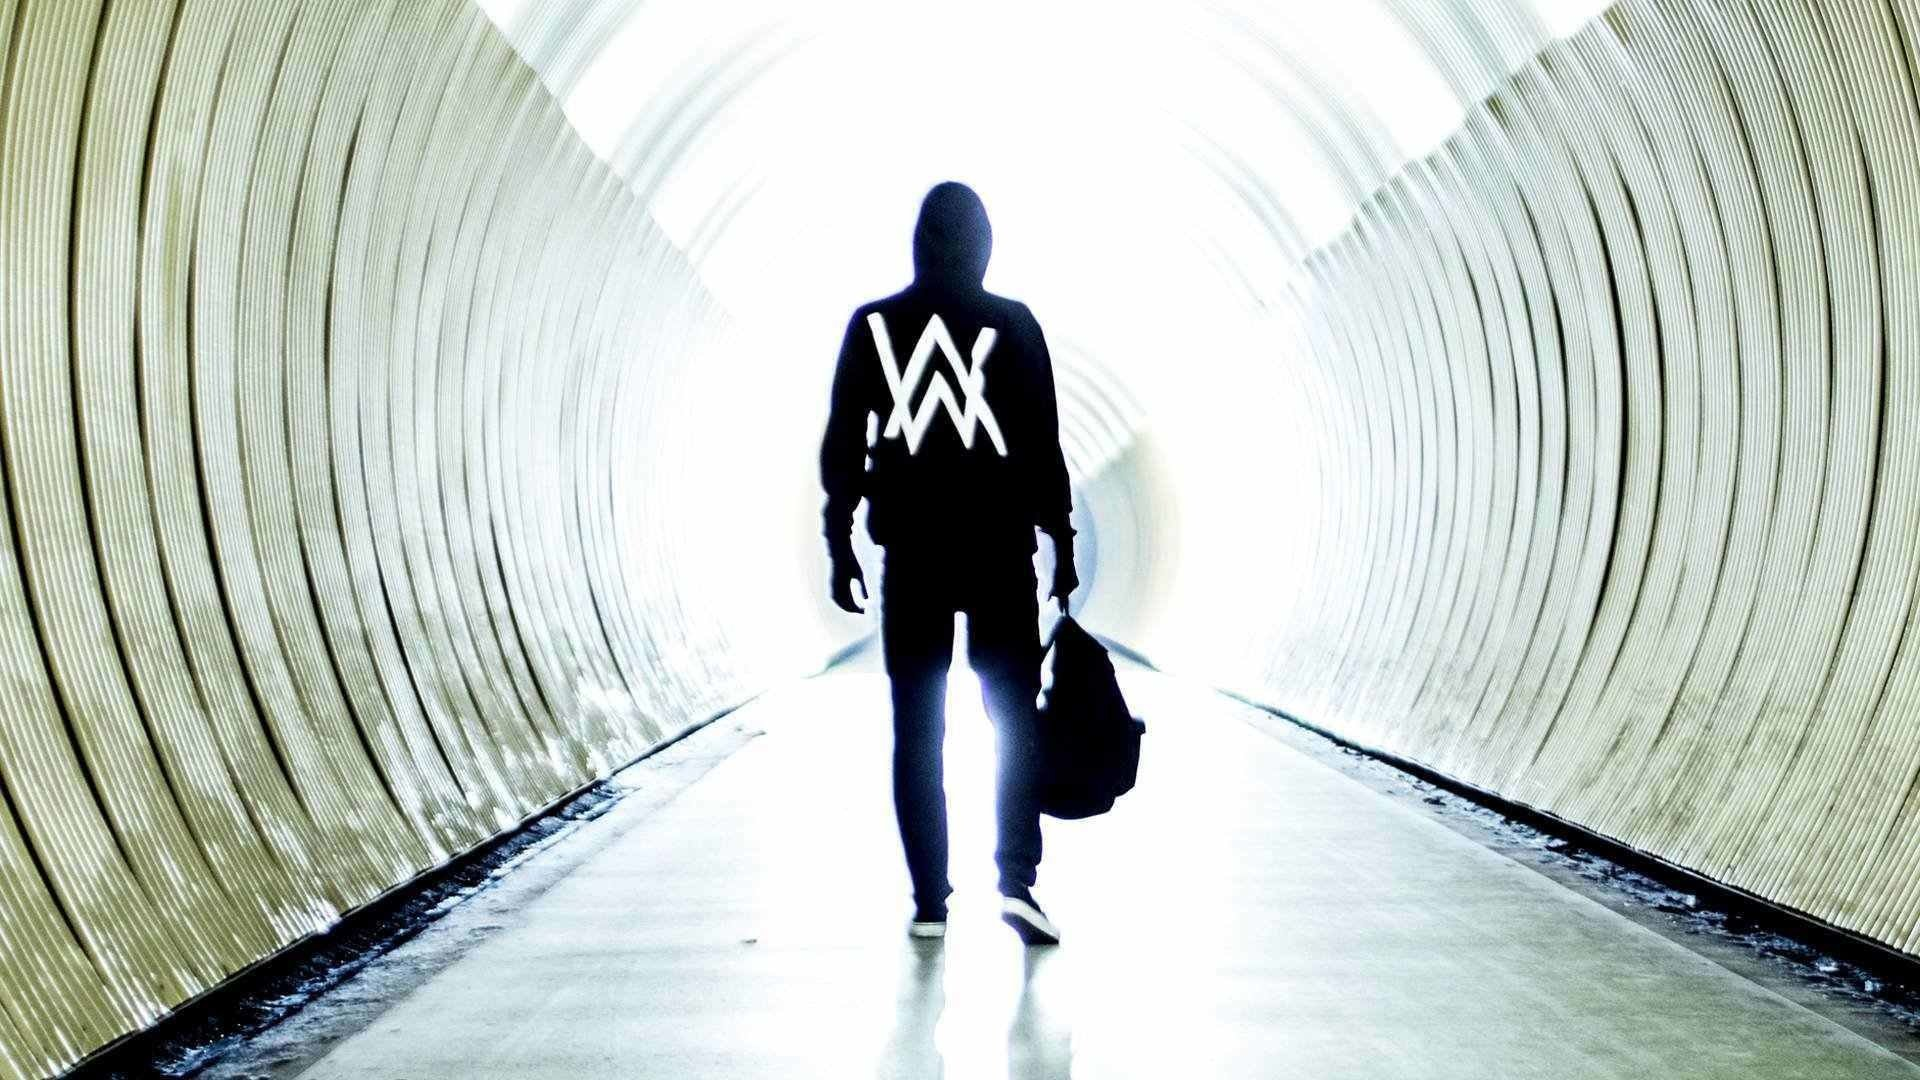 Alan Walker Faded Hd Wallpaper Background Image